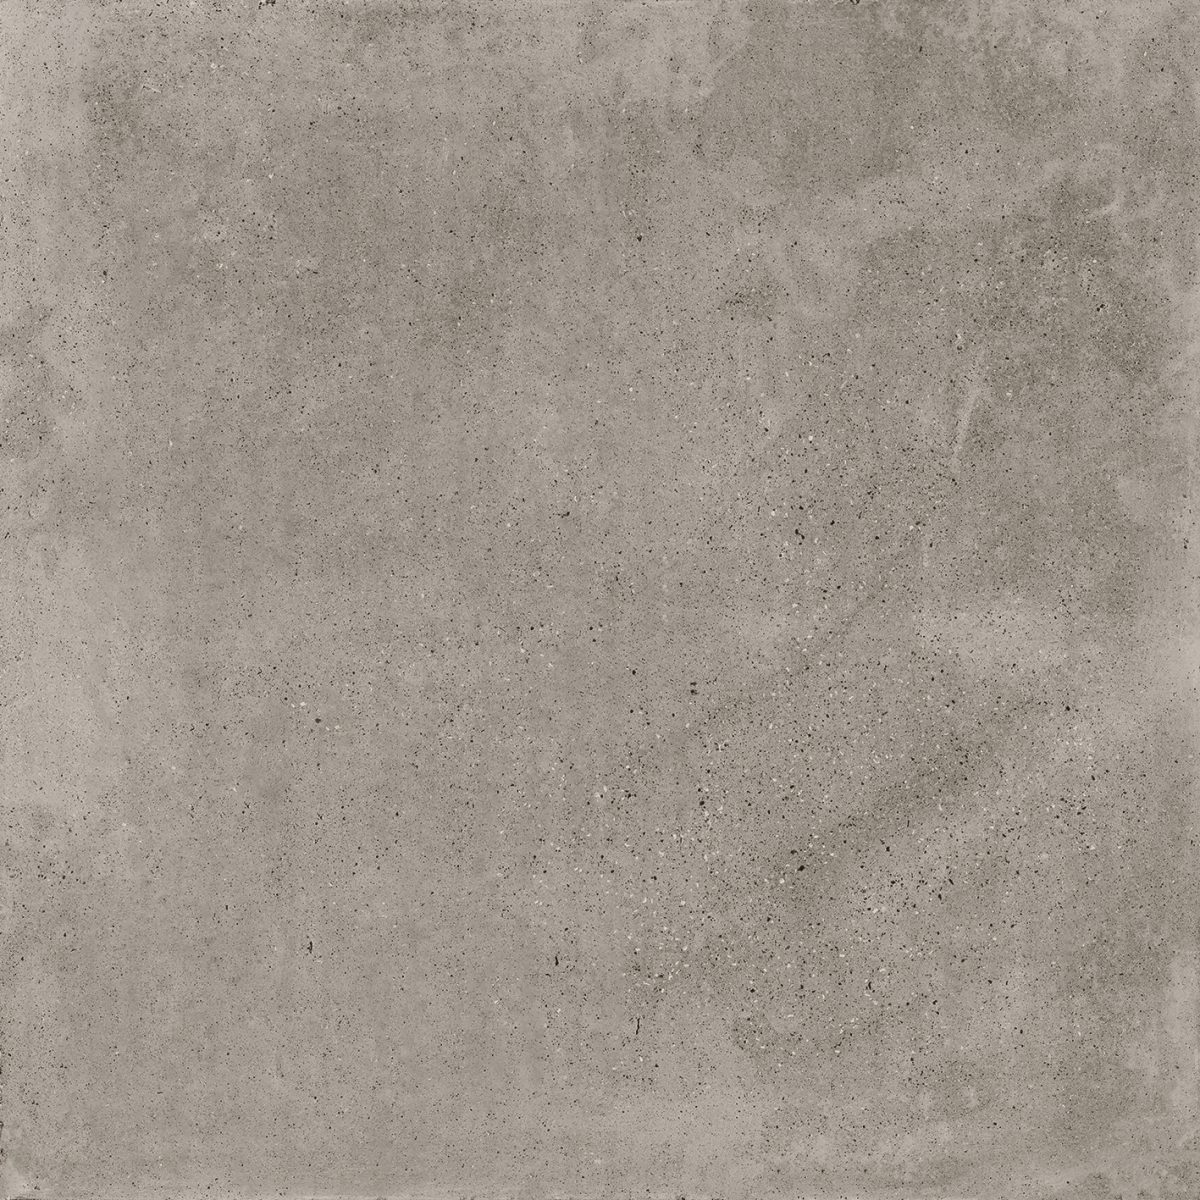 Porcelanosa Bottega Topo Anti-Slip Tile 120 x 120 cm